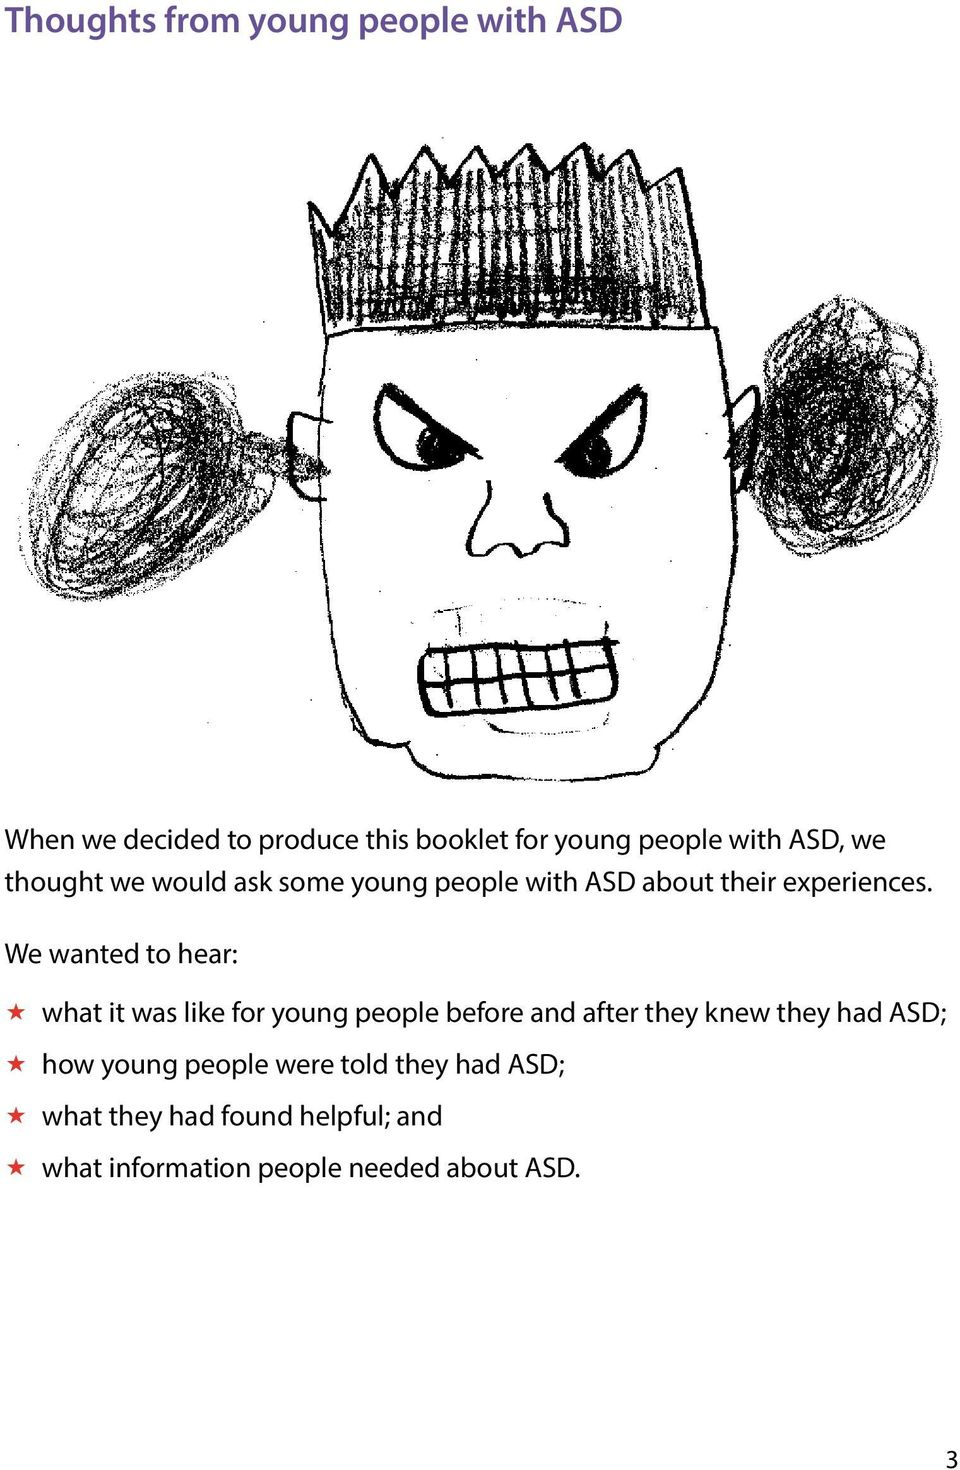 We wanted to hear: what it was like for young people before and after they knew they had ASD; how